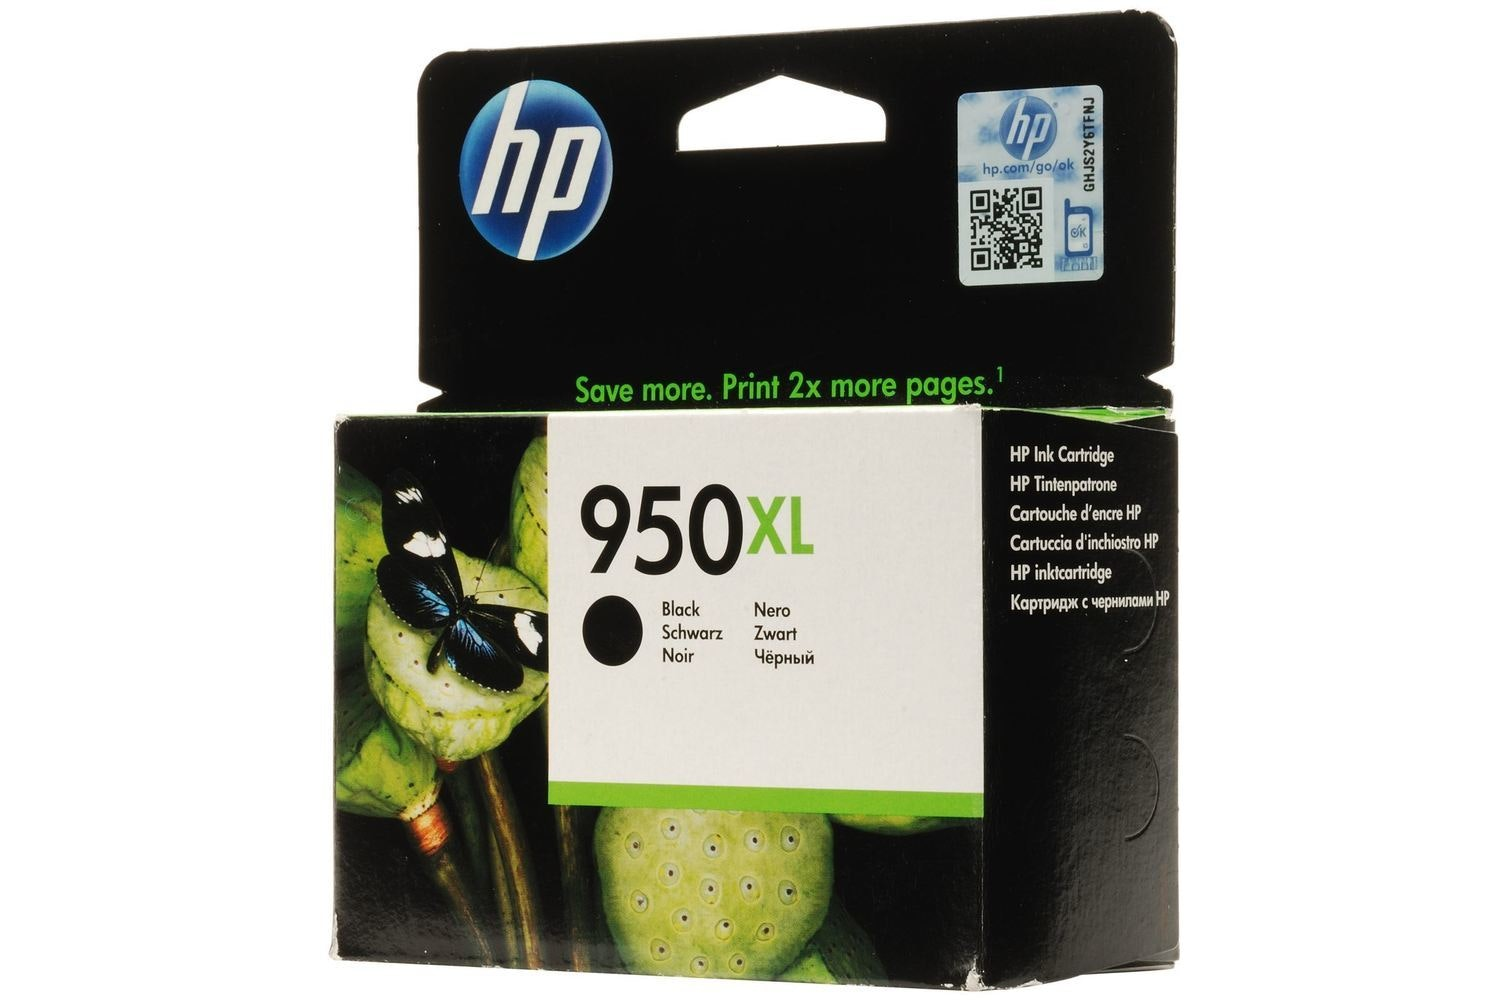 HP 950XL Black Ink